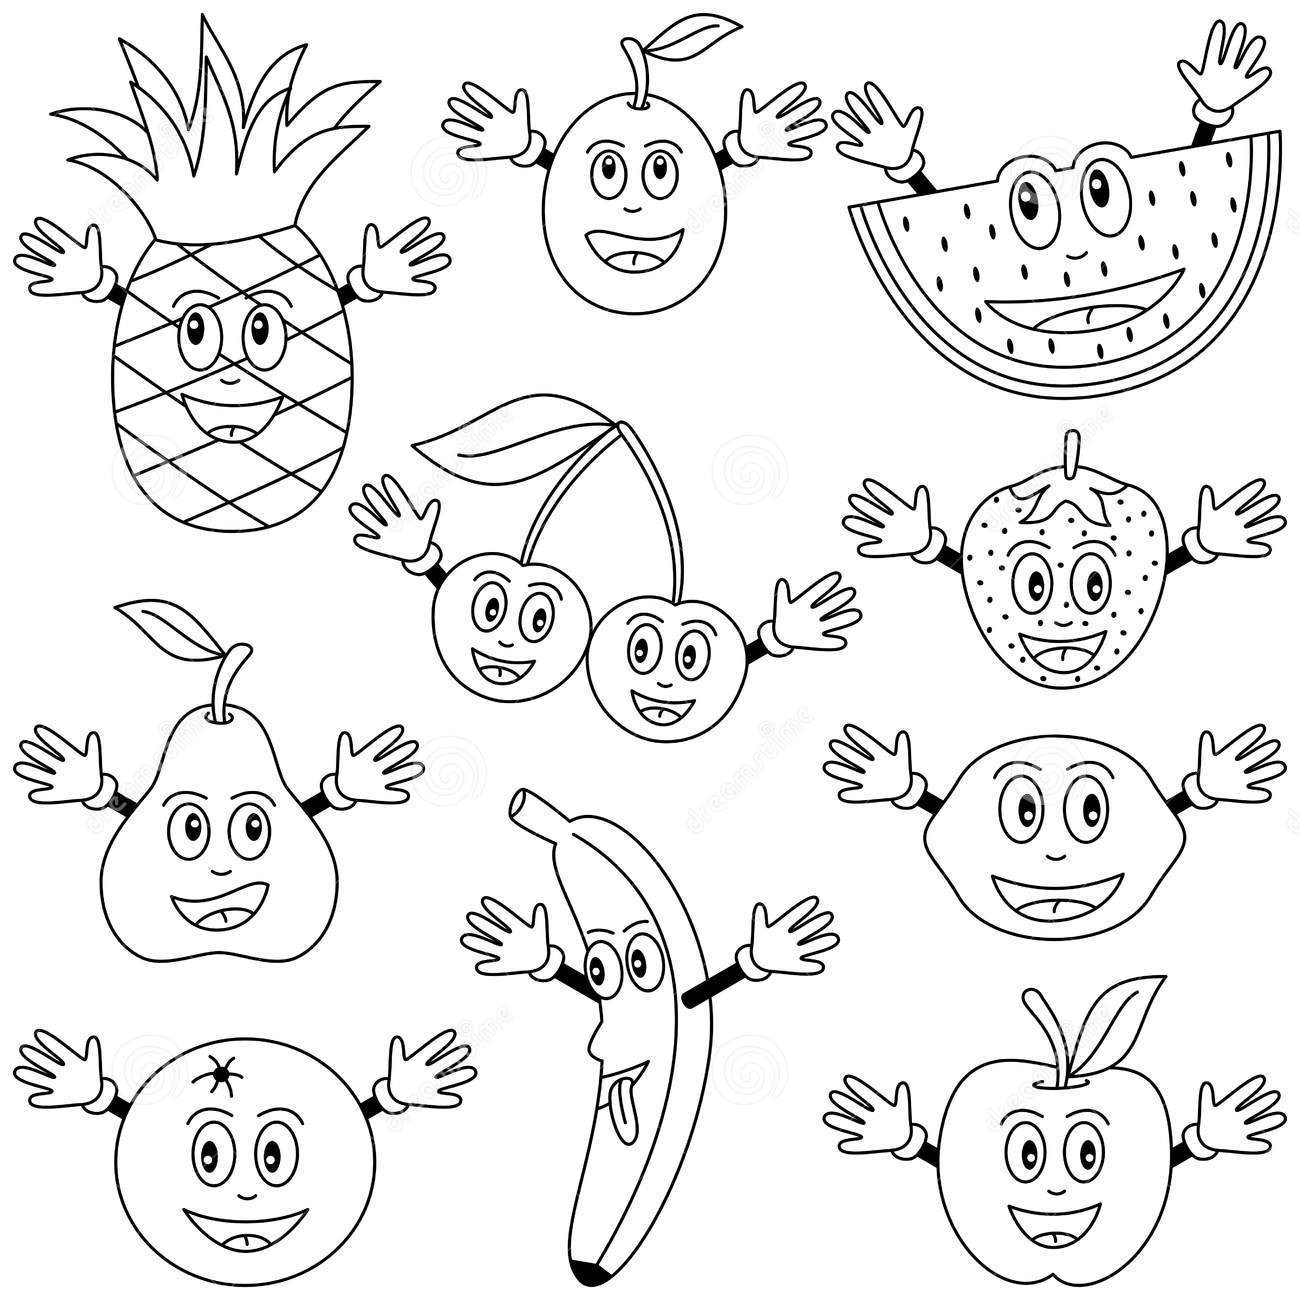 Fruits Vegetables Crafts And Worksheets For Preschool Fruit And Vegetable Coloring Pages